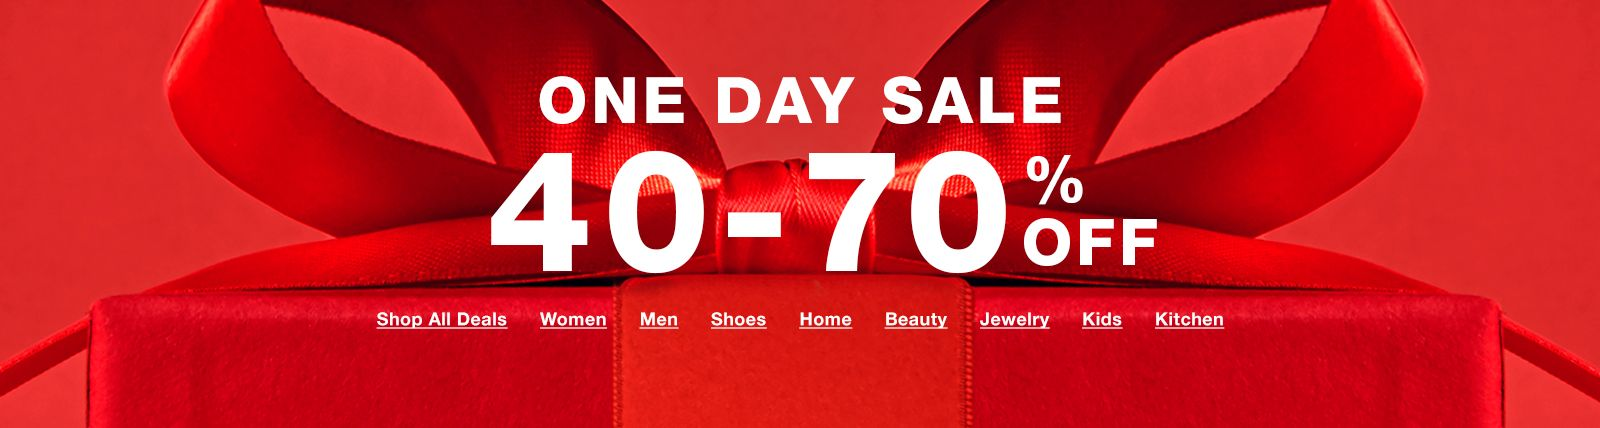 One Day Sale, Deals This Good won't Last Long! Select styles, 12/10-12/11, Shop All Deals, Women, Men, Shoes, Home, Beauty, Jewelry, Kids, Kitchen